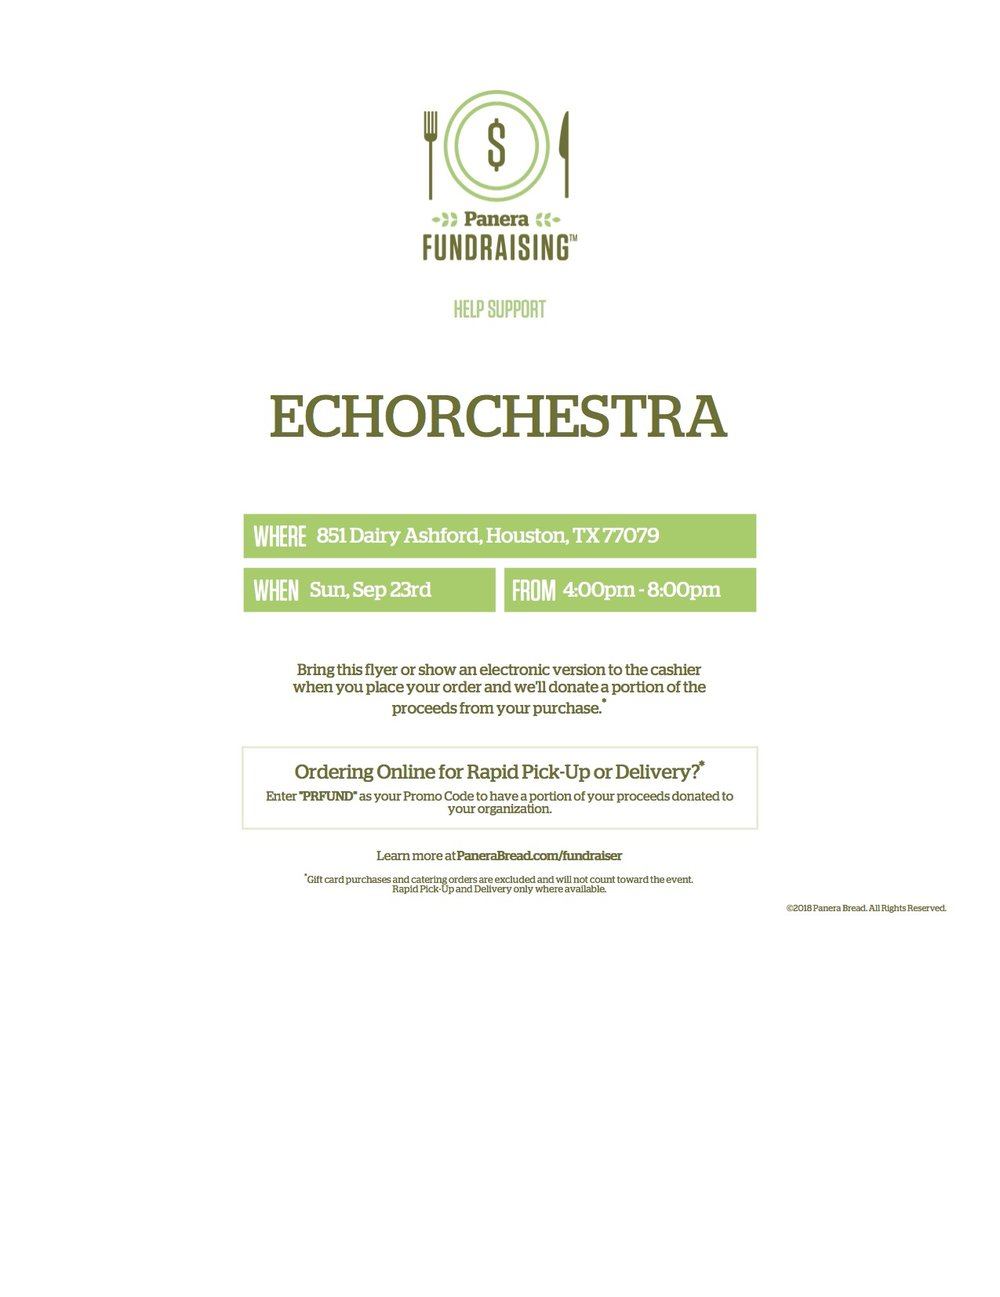 Fundraiser. September 23,2018-Echorchestra.jpg